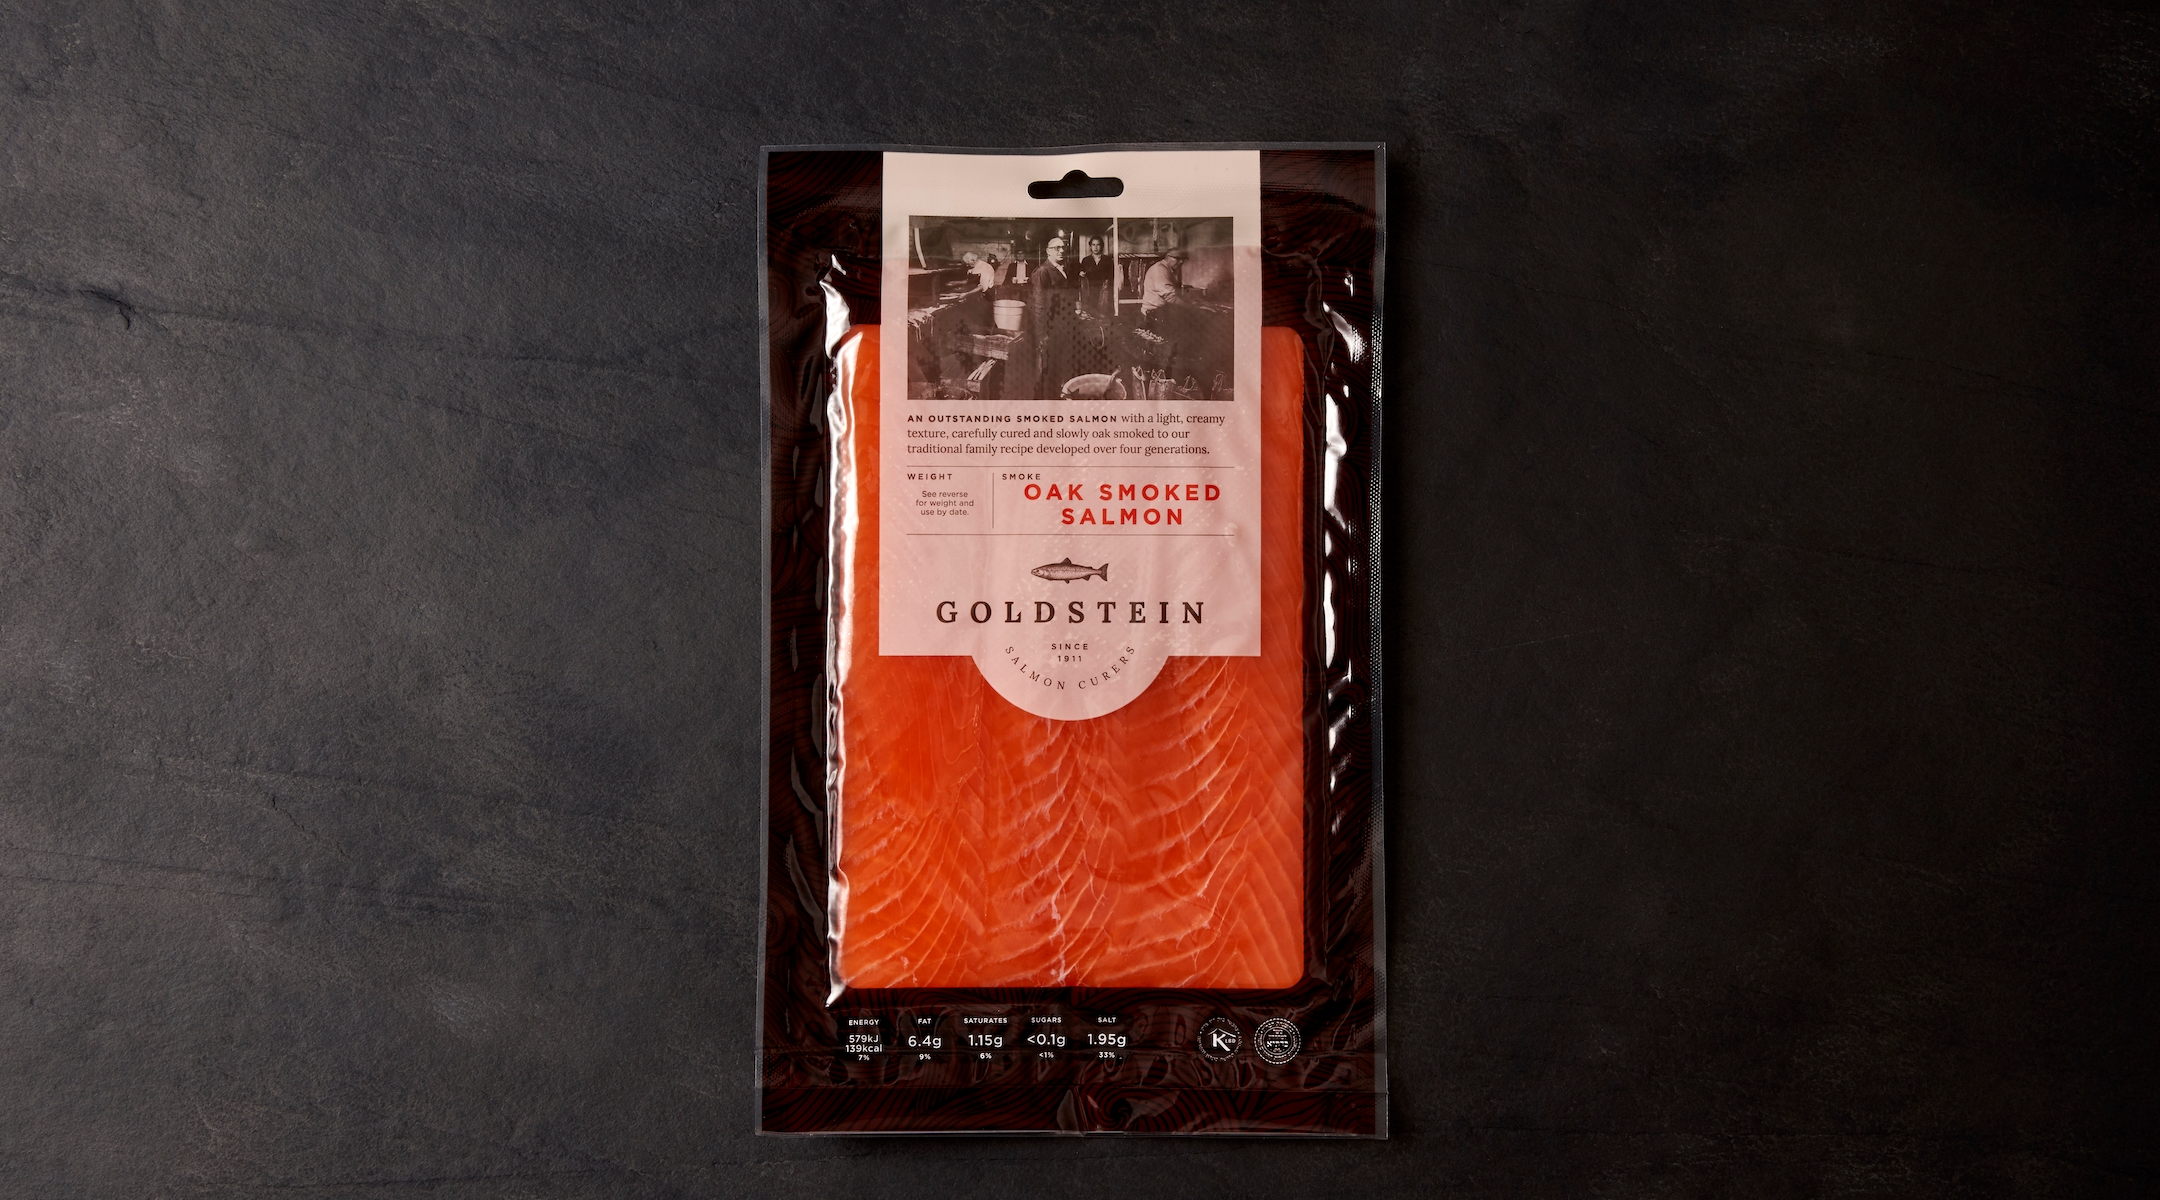 A New York lox company has boomed during the pandemic — by selling smoked salmon...